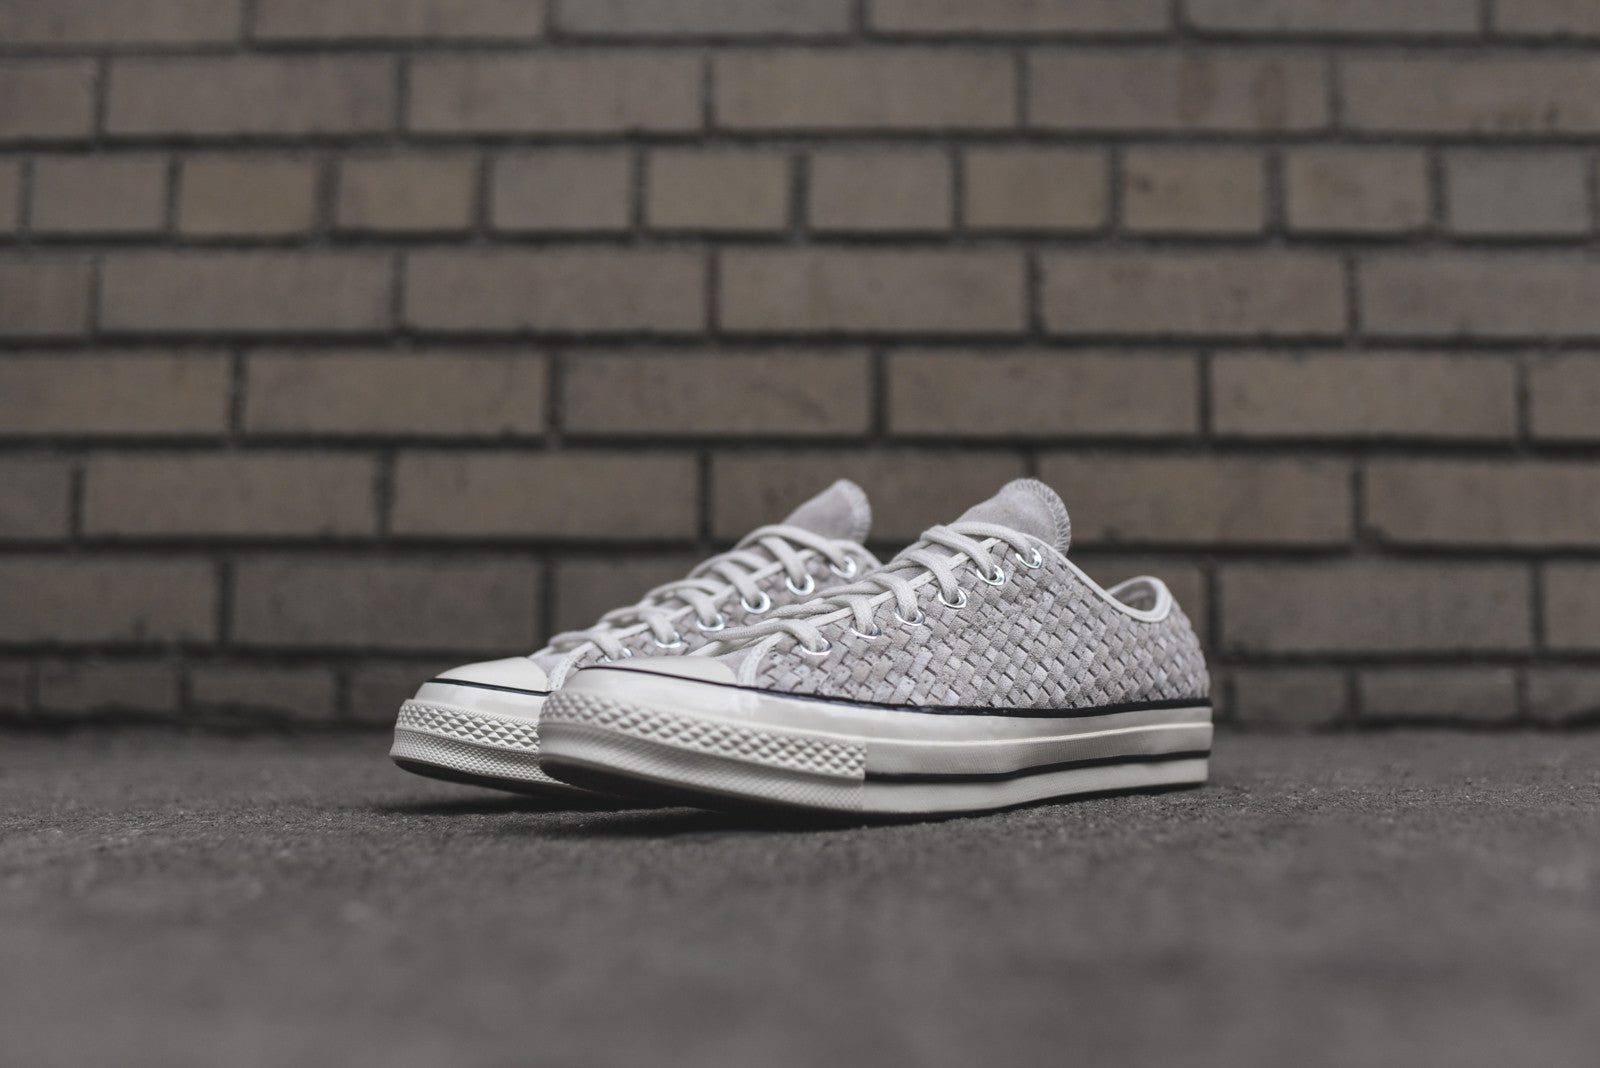 Converse Chuck Taylor All Star Ox 1970 Woven - Light Grey